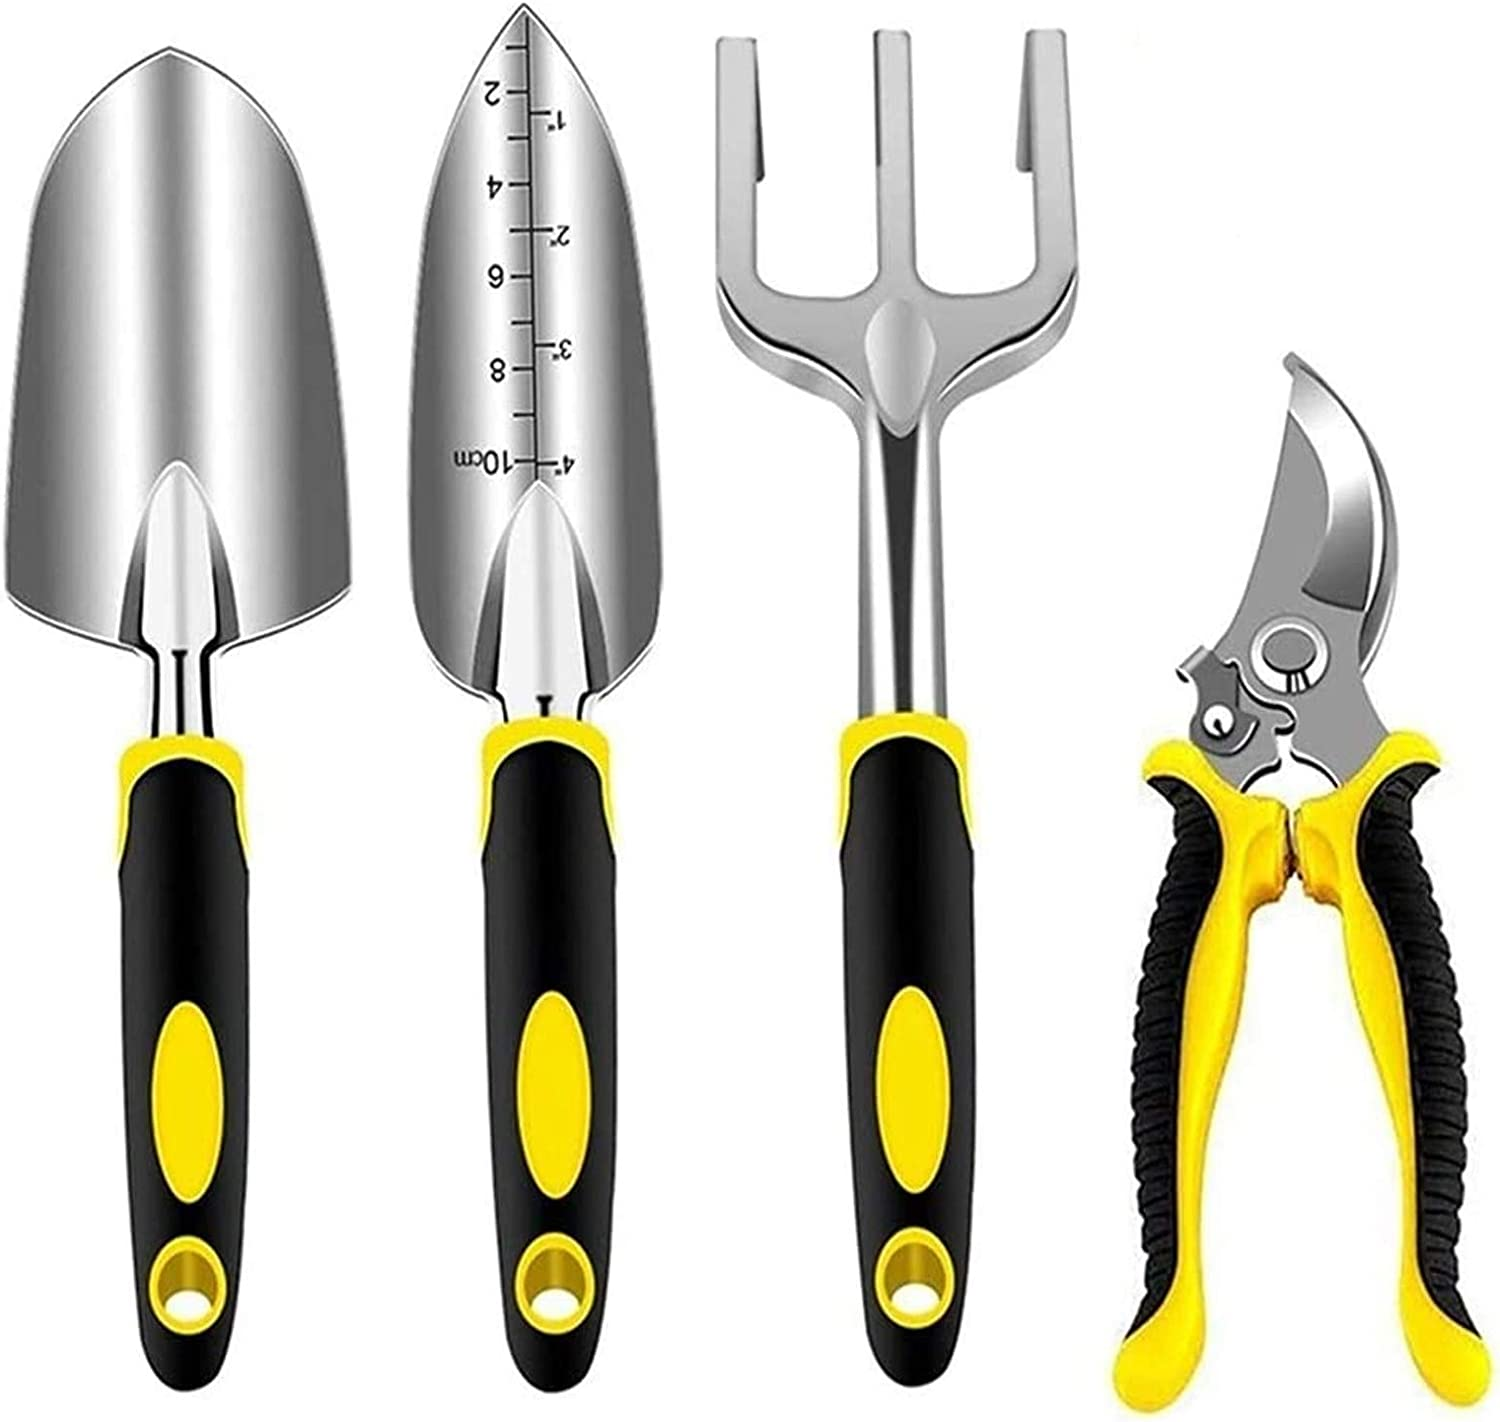 Lion-Y Garden Tool Set 4 Piece Aluminum Gardening Tools Kit with Pruning Shear, Rake, Shovel and Heavy Duty Trowel for Outdoor Flower Plant Bonsai Gardening Hand Tools